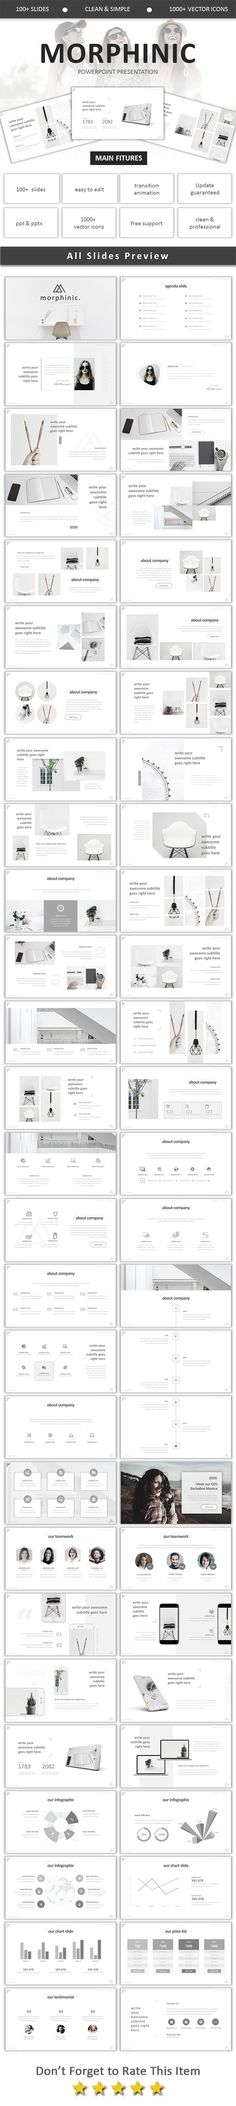 Morphinic Modern Powerpoint - Business PowerPoint Templates